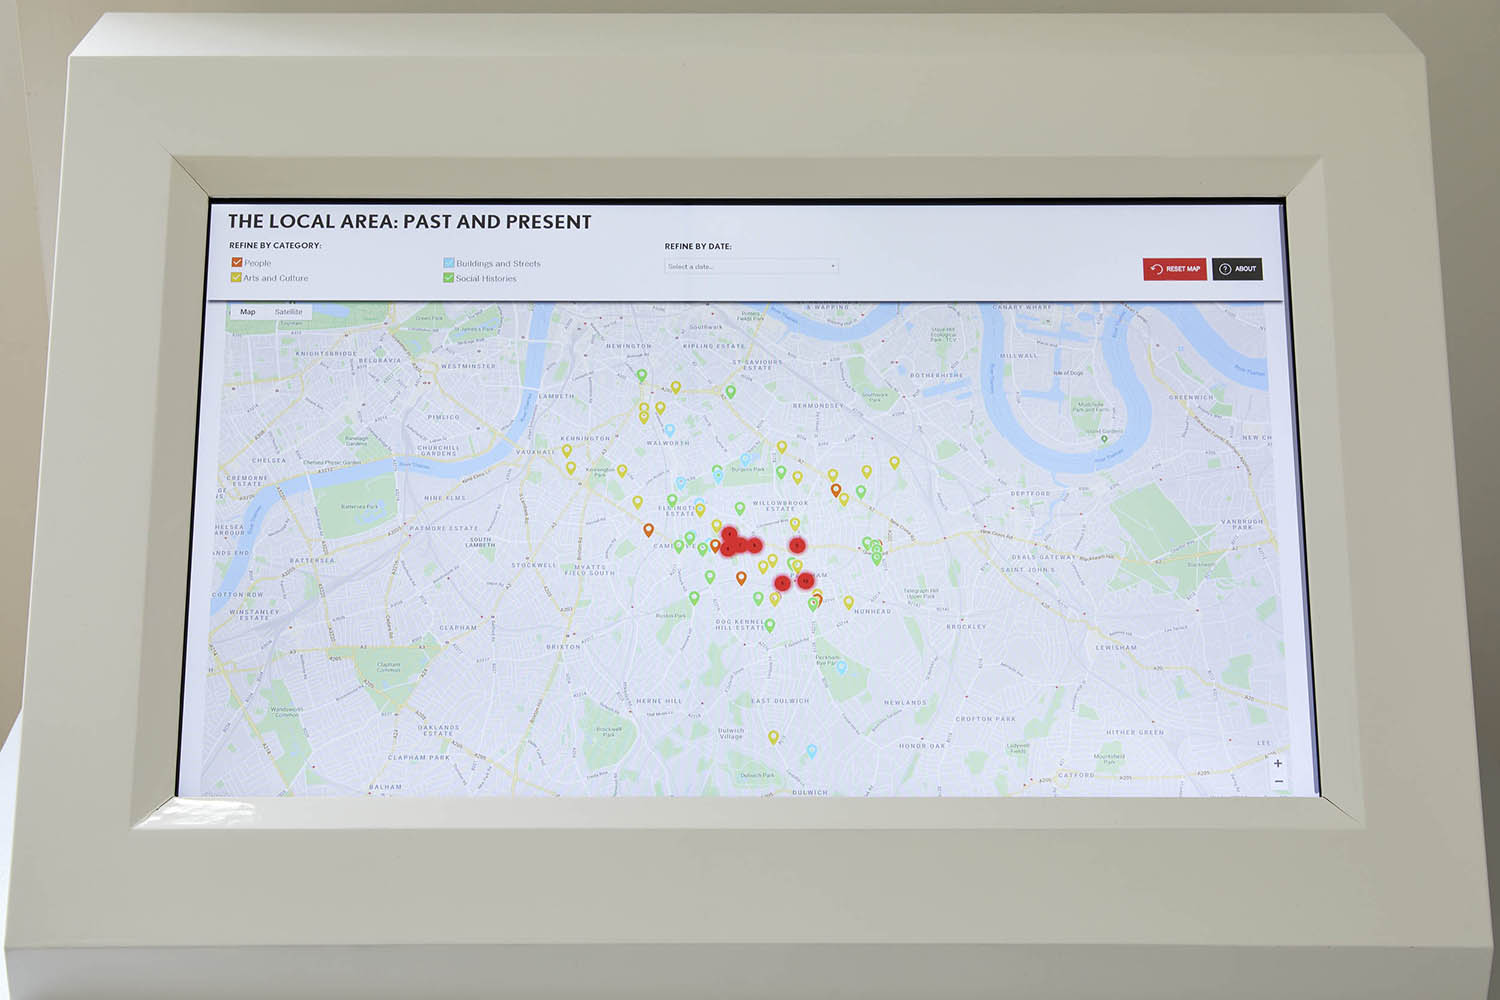 South London Areas Map.A History Of South London In 100 Places And Counting South